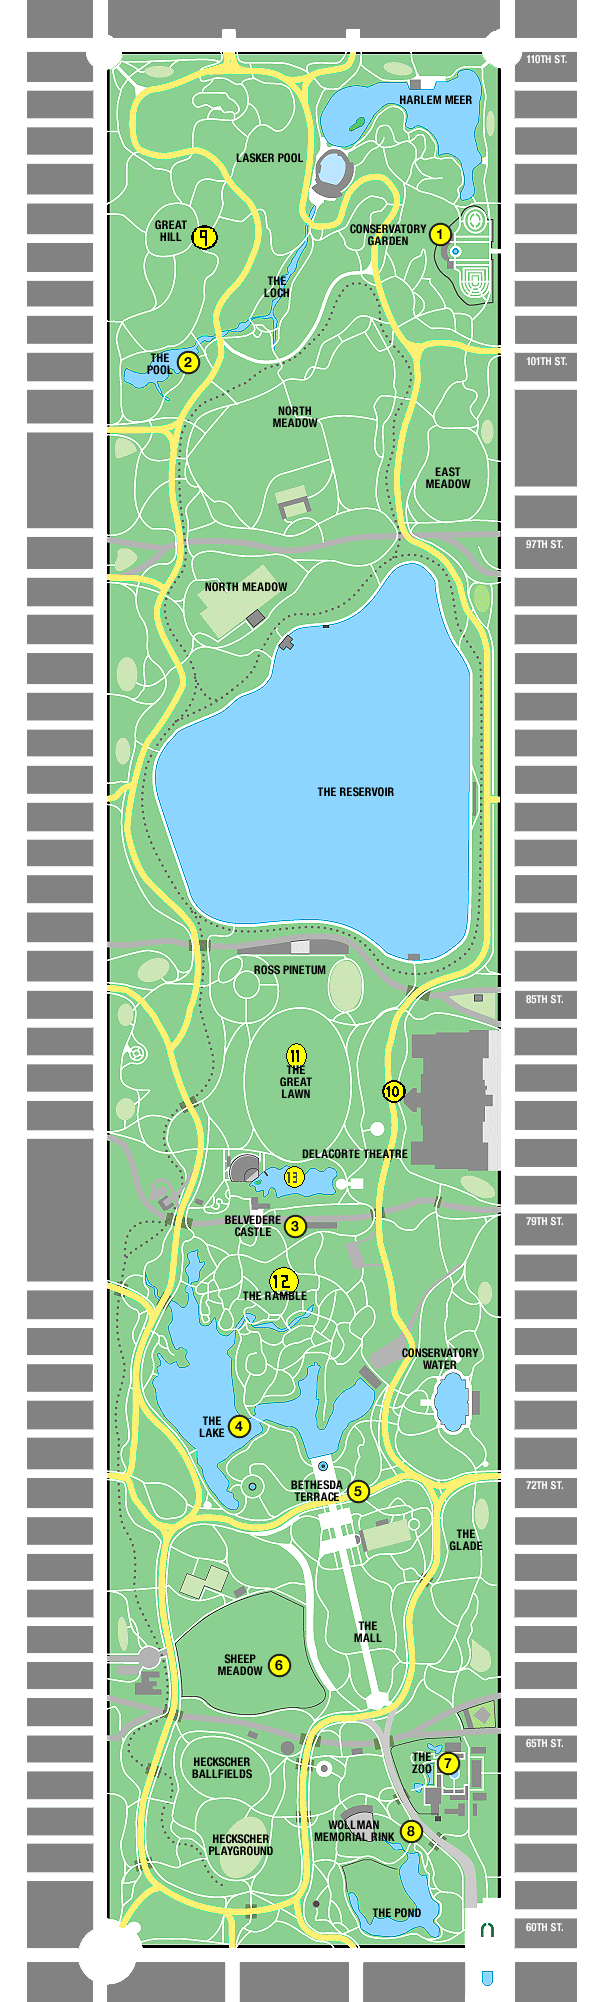 Central Park Map New York Central Park Map